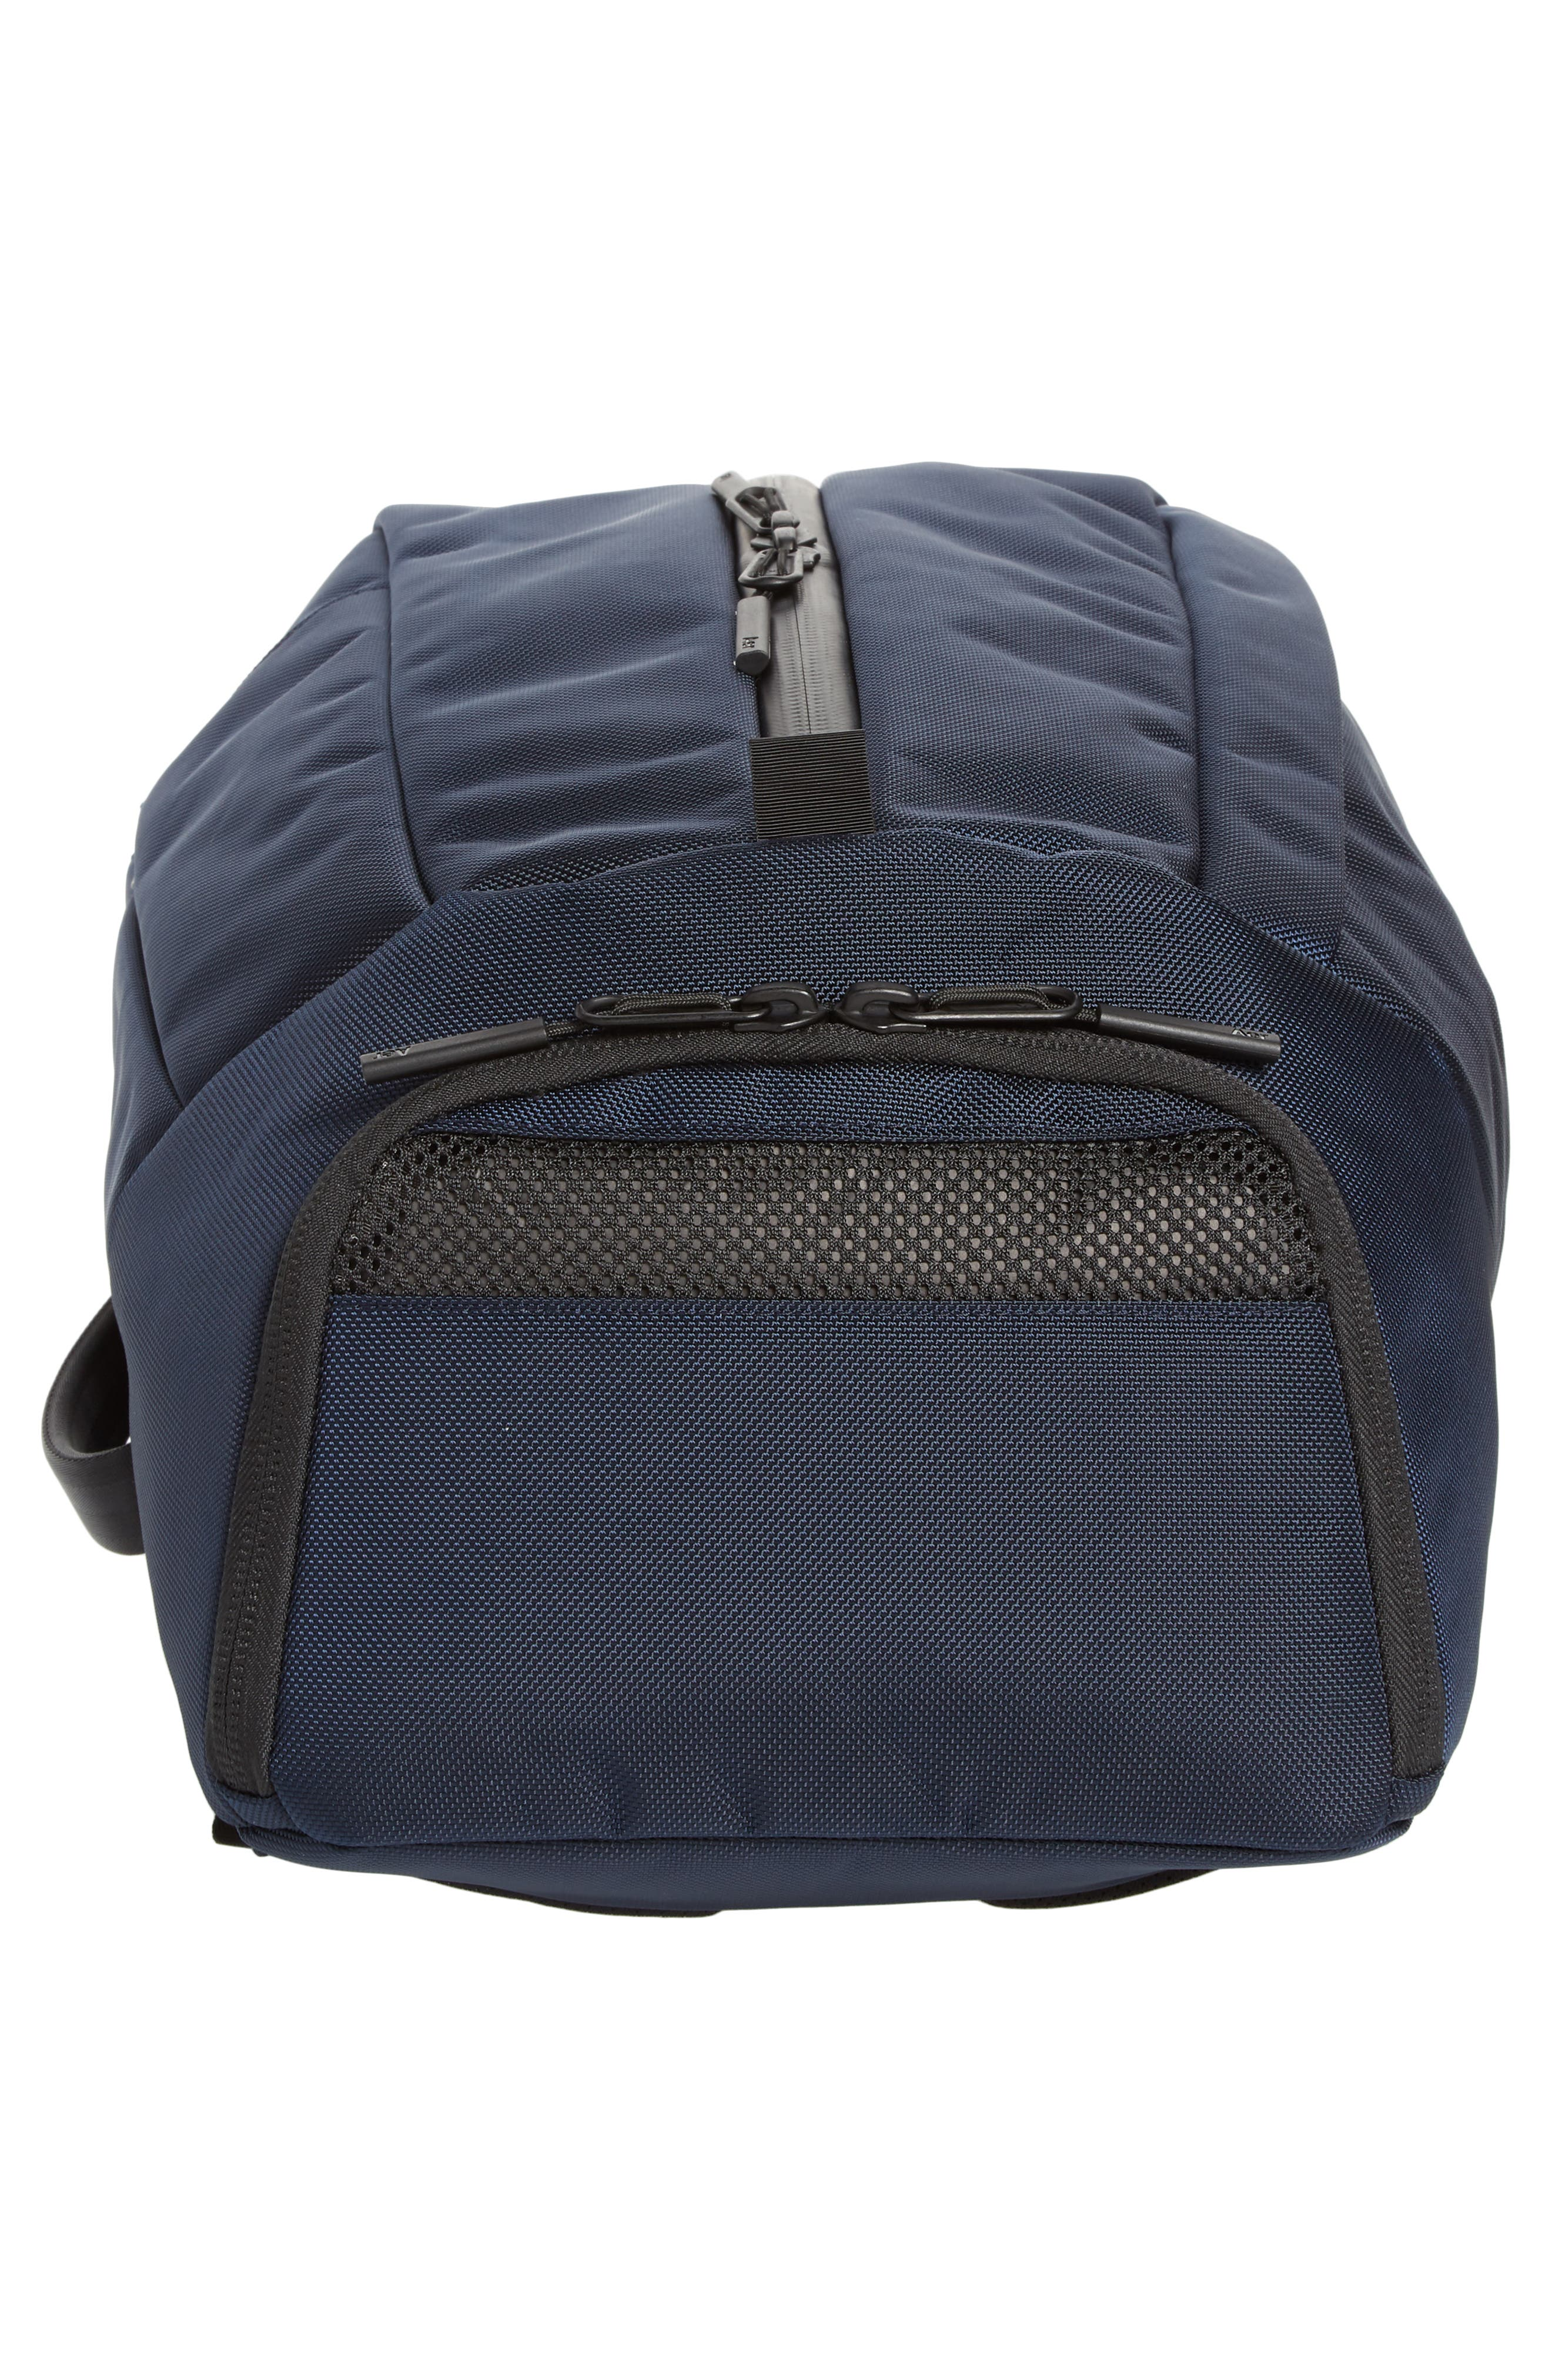 Duffel Pack 2 Convertible Backpack,                             Alternate thumbnail 6, color,                             410